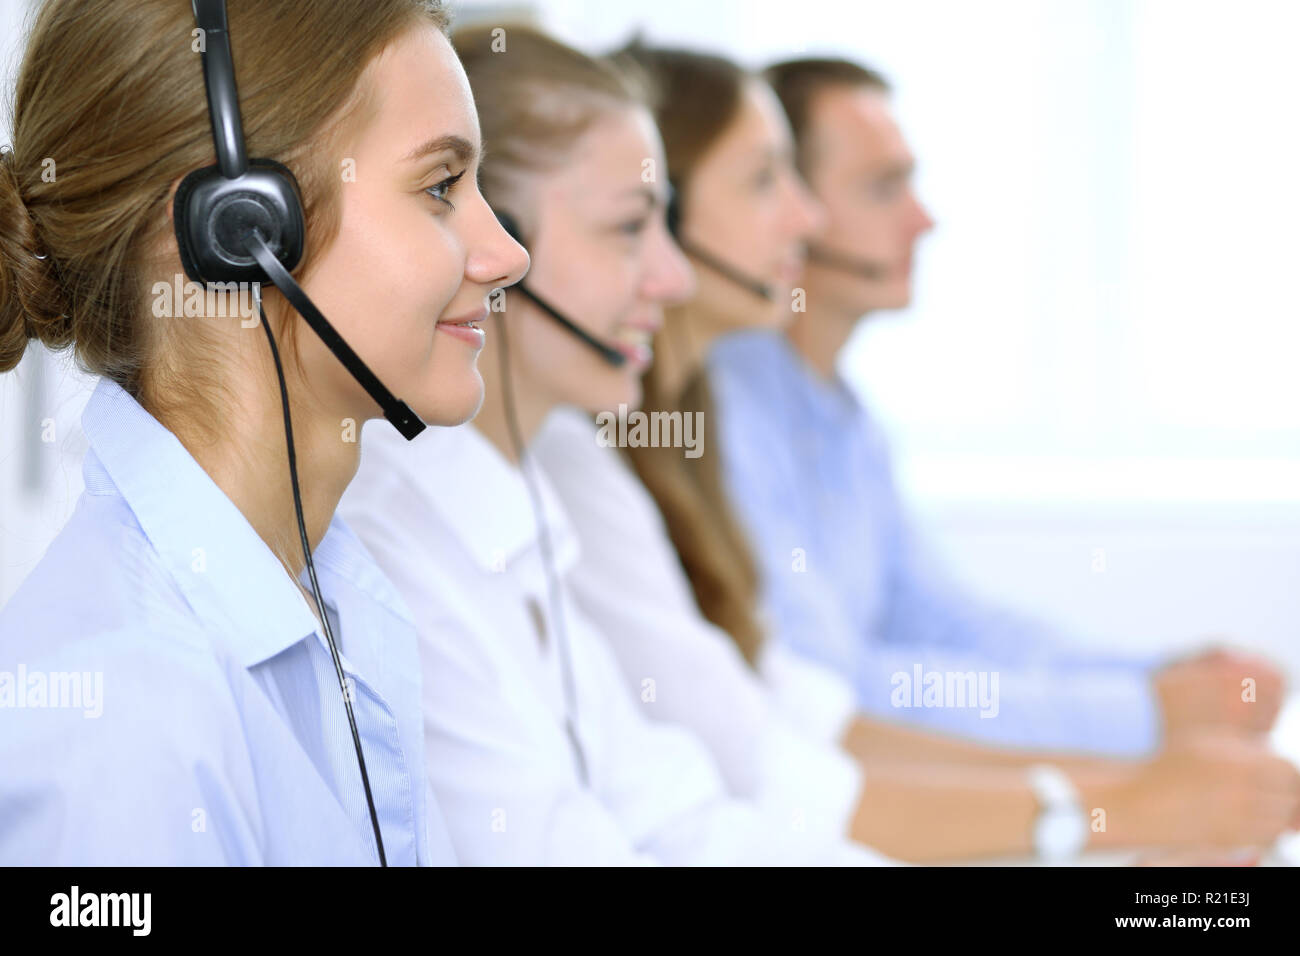 Call center operator in headset while consulting client. Telemarketing or phone sales Stock Photo